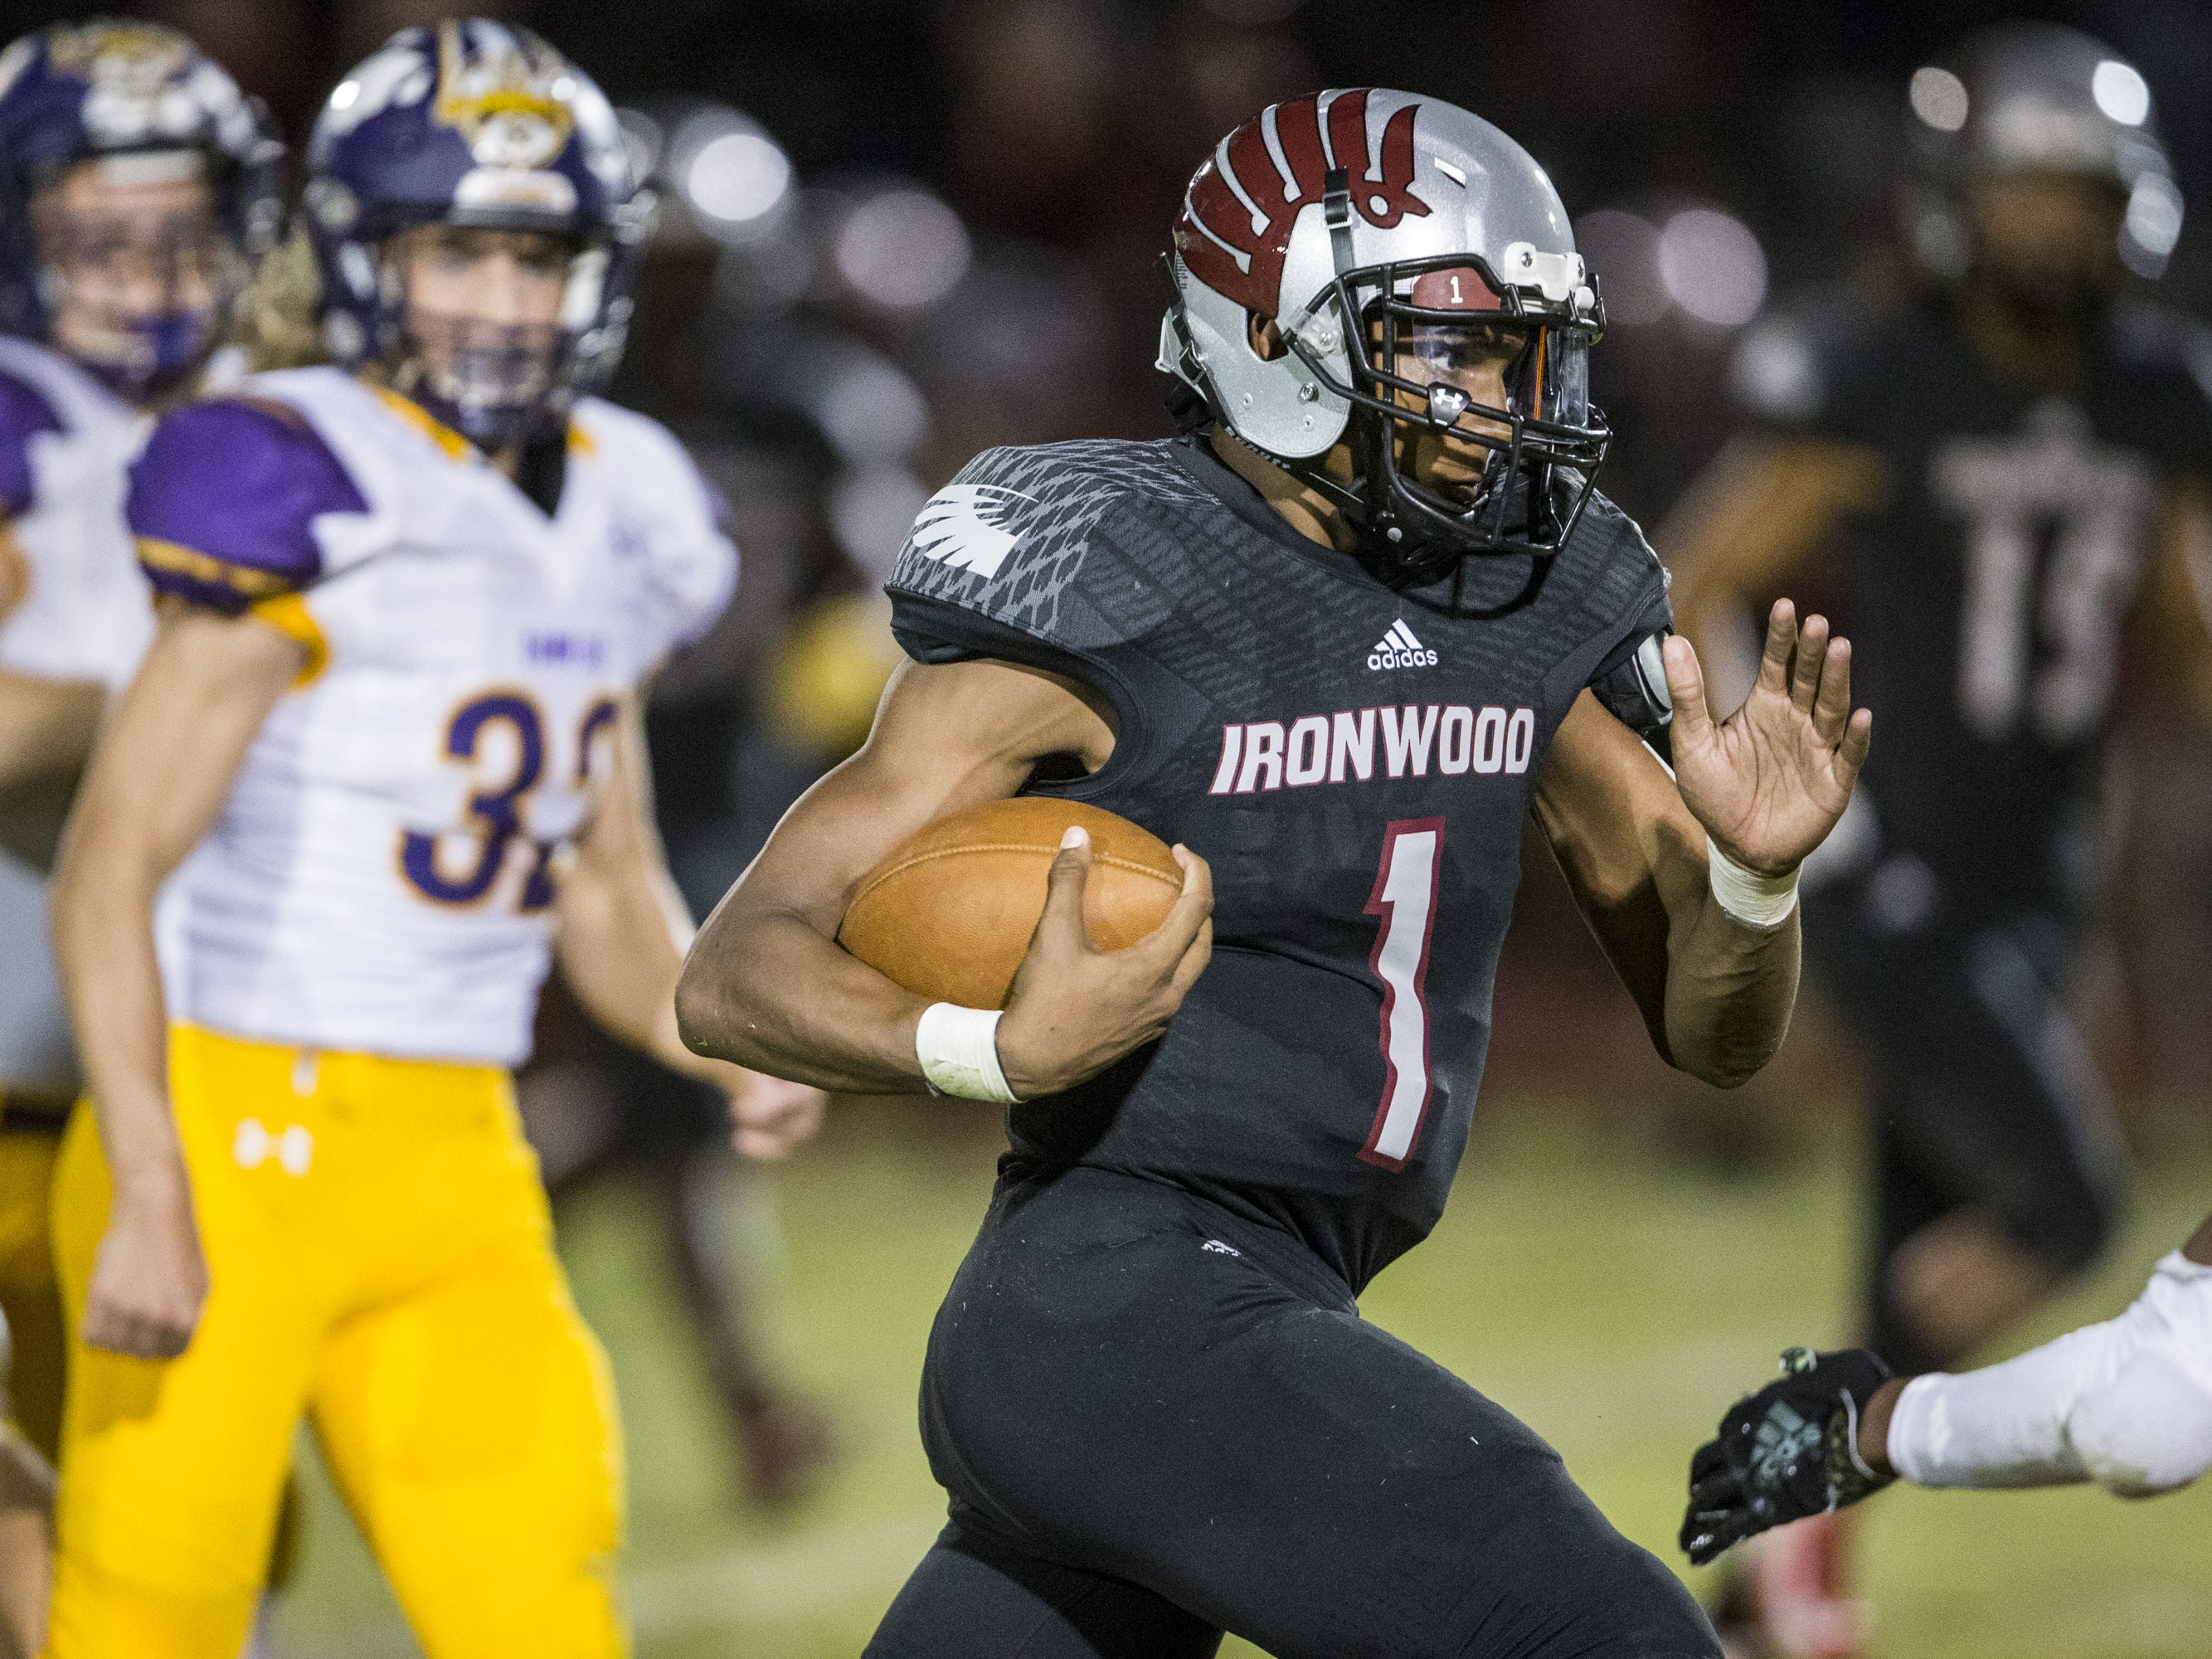 Ironwood's William Haskell rushes against Sunrise Mountain in the 2nd quarter on Friday, Sept. 28, 2018, at Ironwood High School in Glendale, Ariz.  #azhsfb